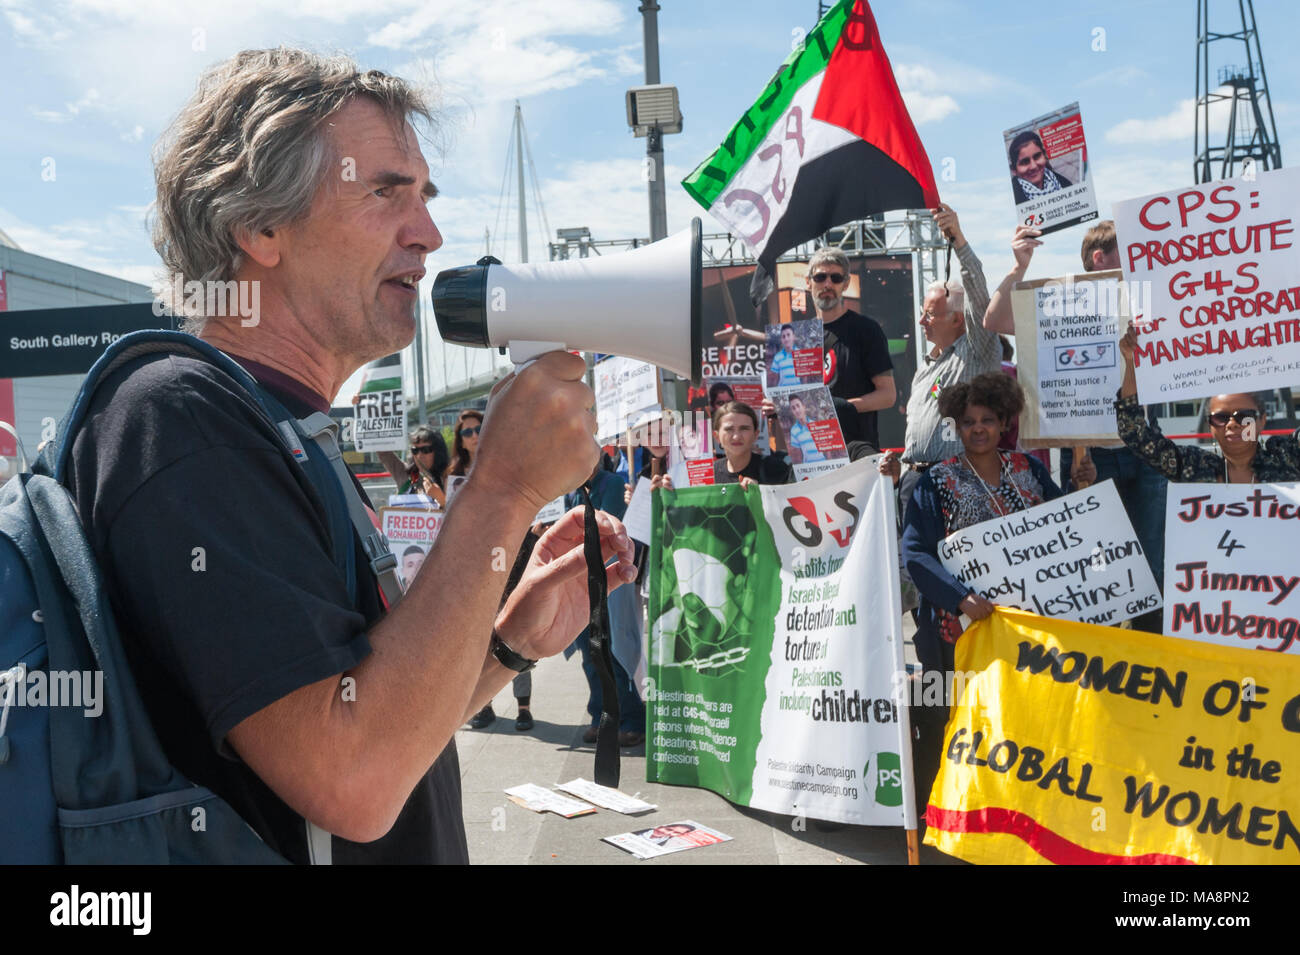 Protesters at Stop 4S protest outside G4S AGM at Excel London call for an end to immigration detention and human rights abuses in immigration detention centres and support for Israeli military and prison system by G4S Stock Photo